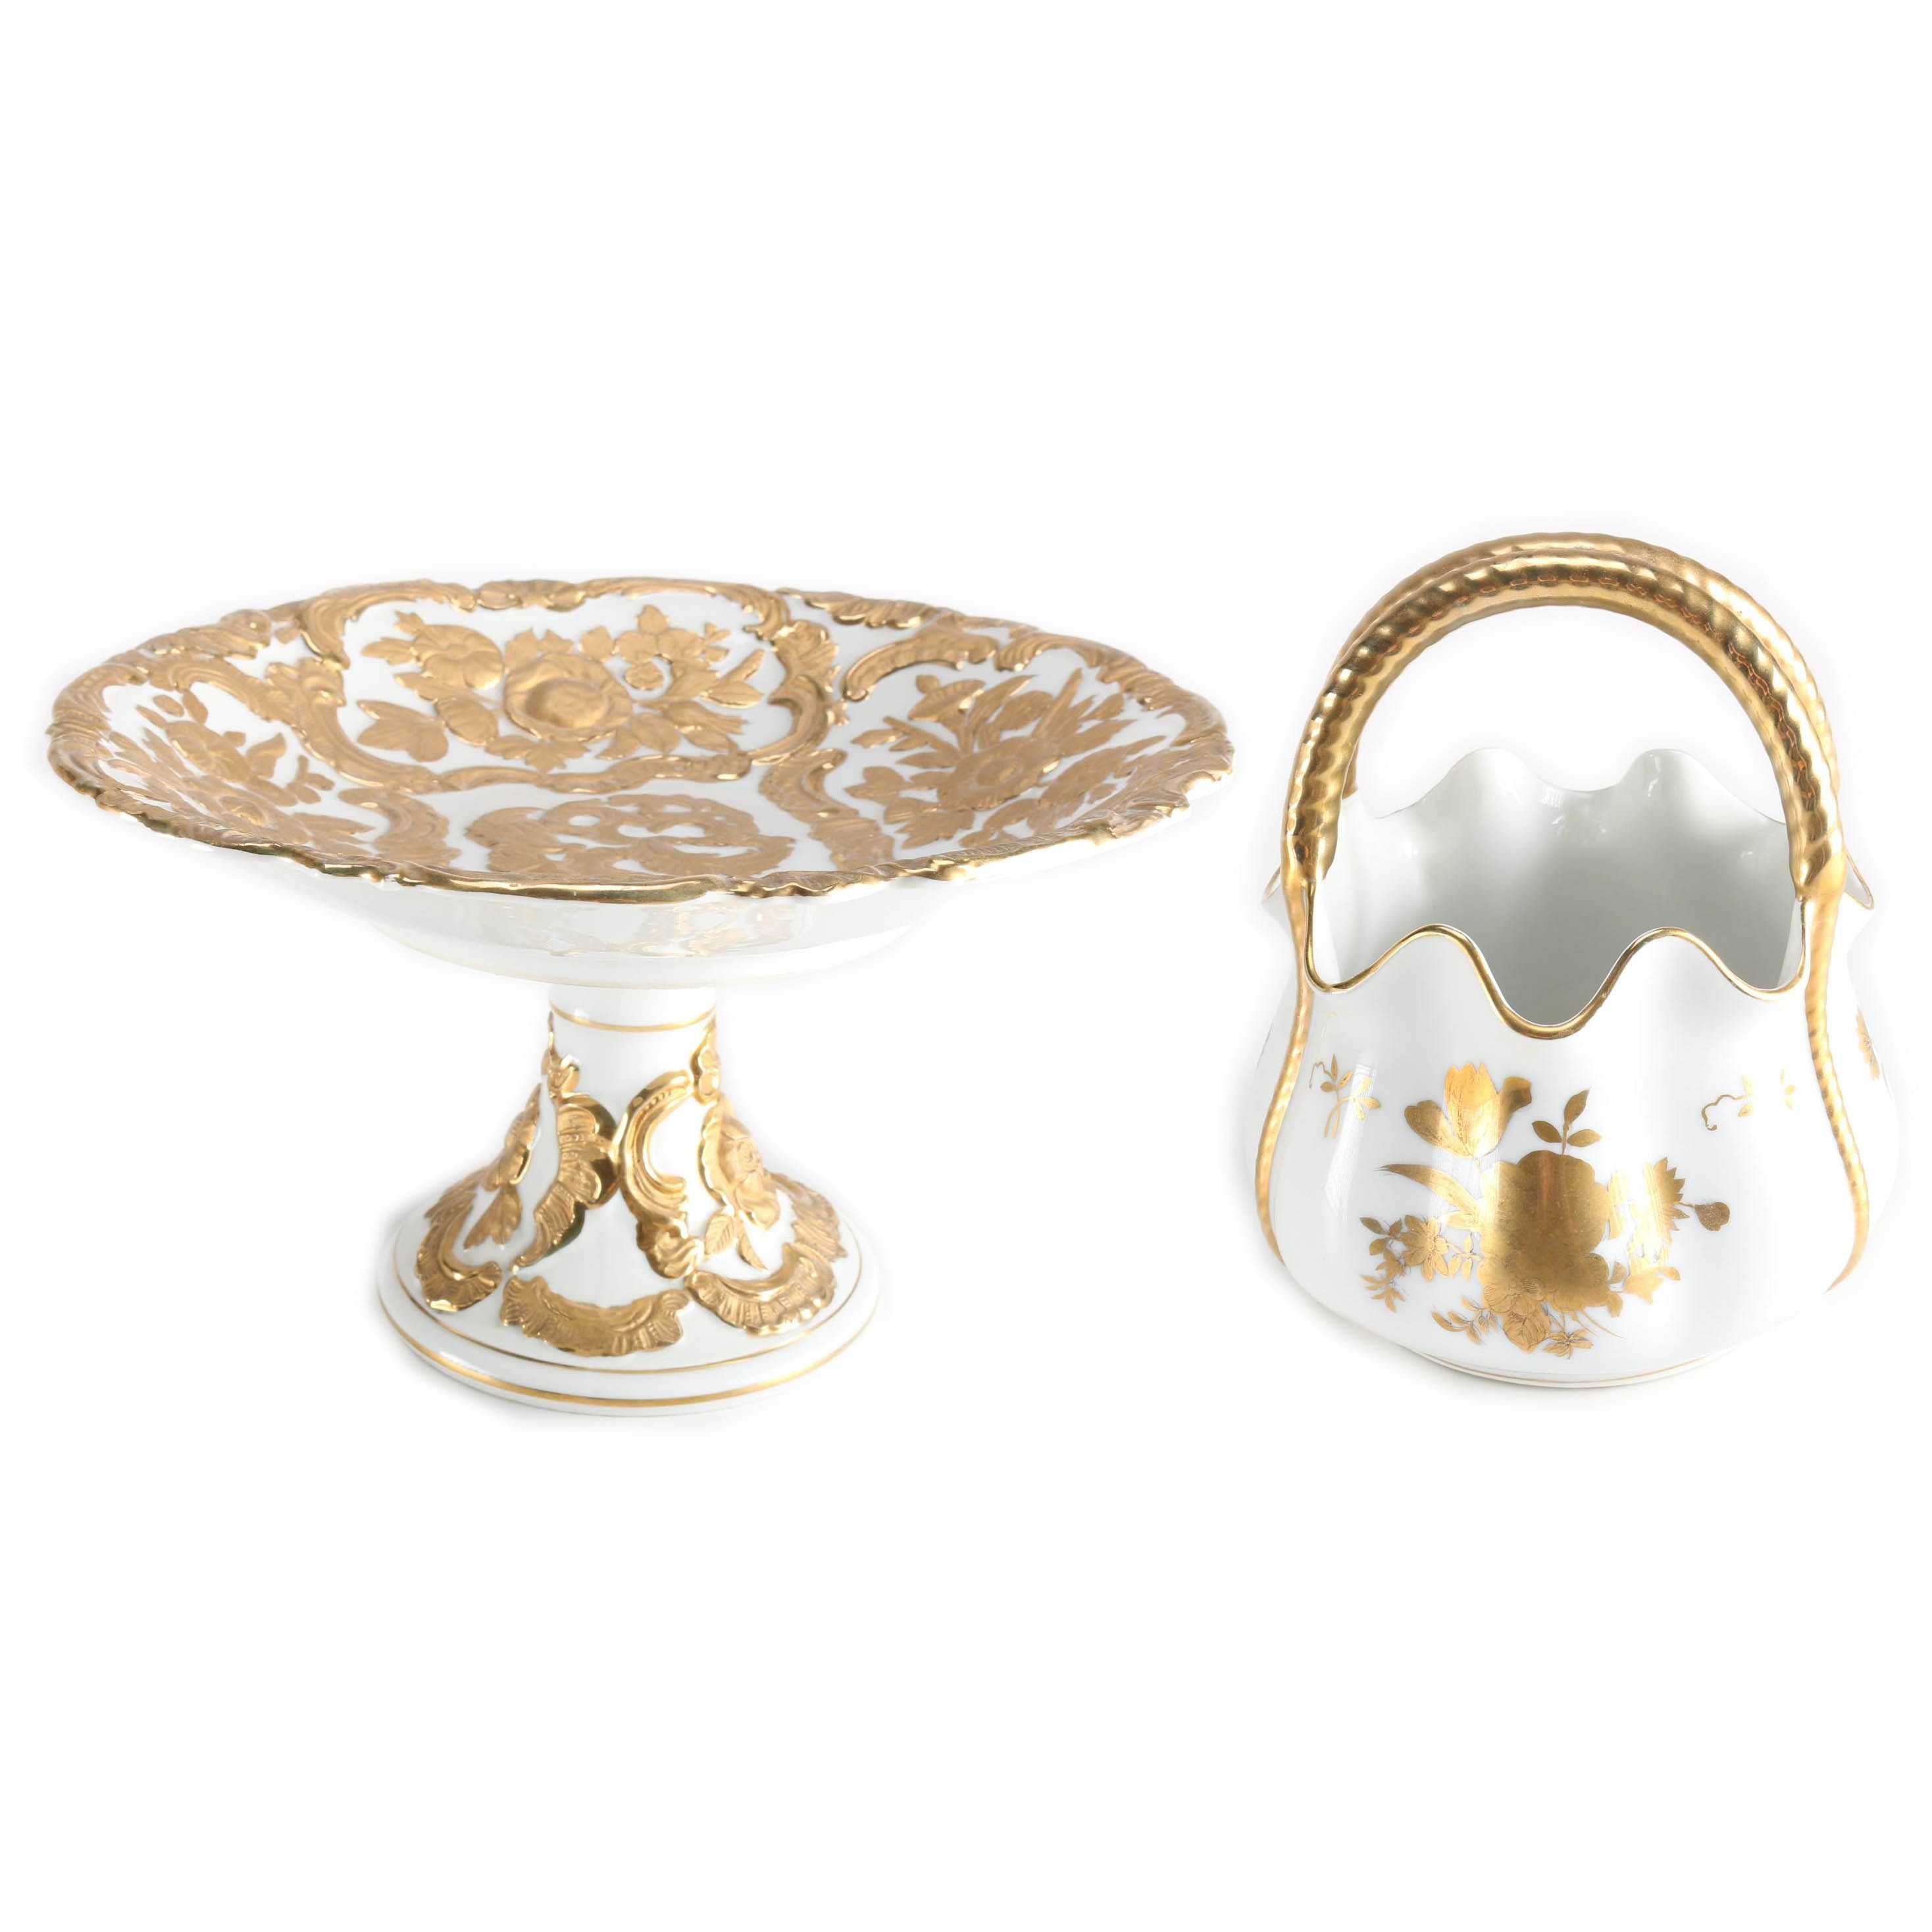 White and Gold Tone Porcelain Décor Featuring Meissen